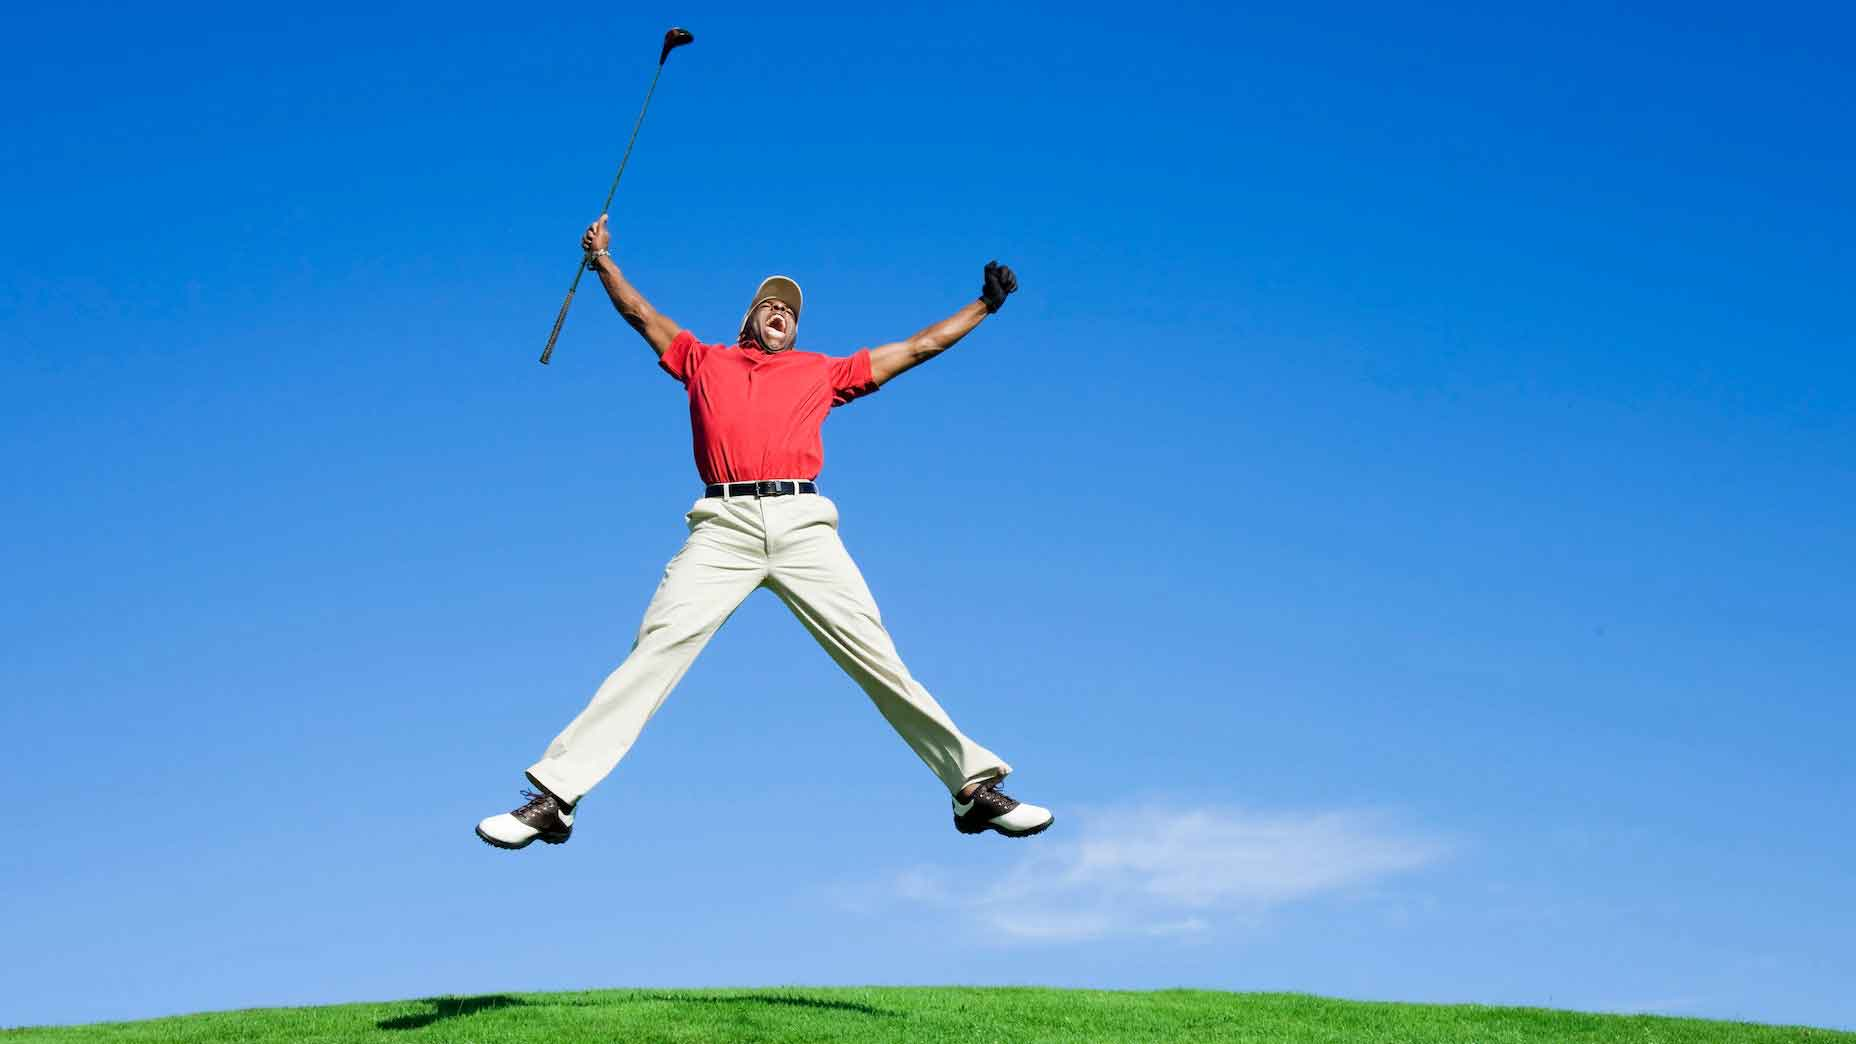 Leaping golfer